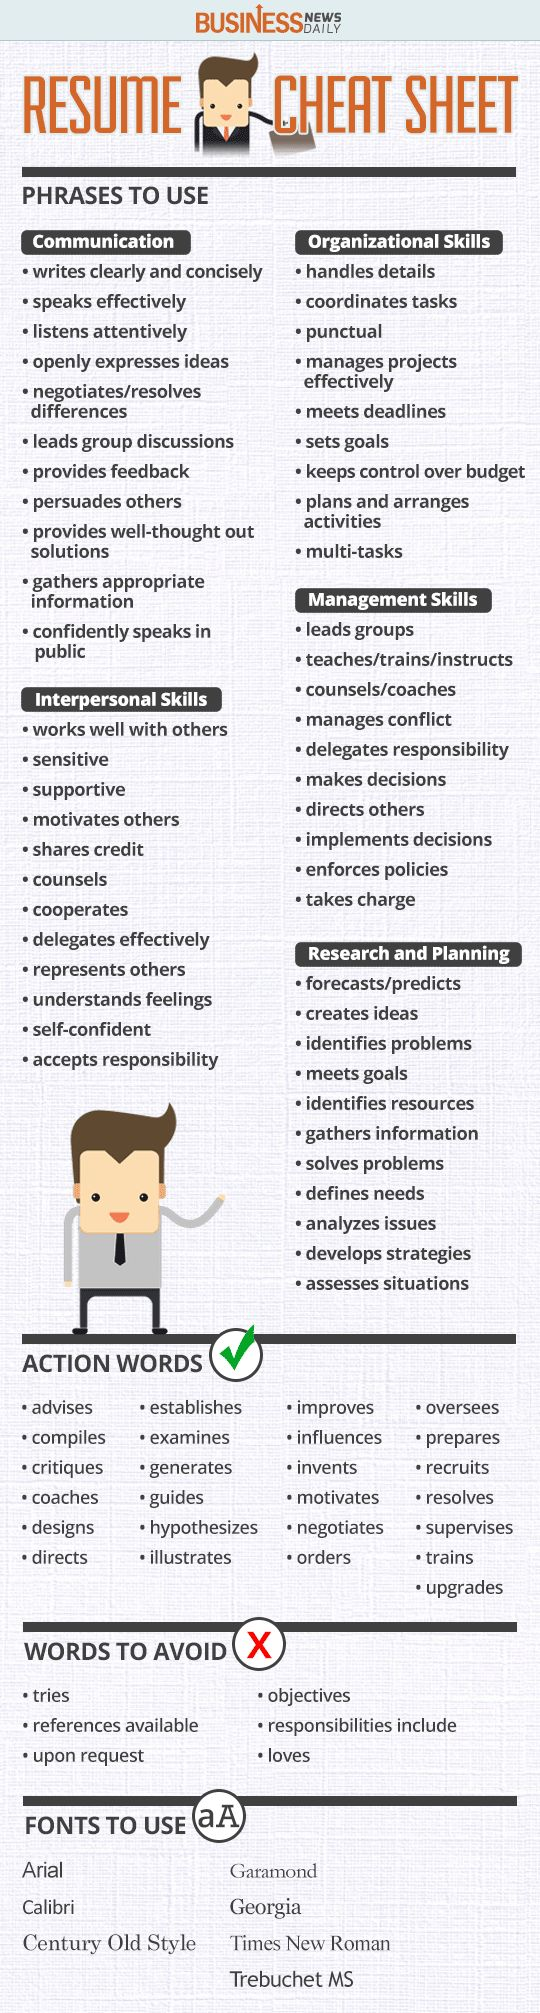 Opposenewapstandardsus  Marvellous  Ideas About Resume On Pinterest  Cv Format Resume Cv And  With Entrancing Resume Cheat Sheet Infographic Andrews Almost Done With A Complete Unit On Employment Which With Archaic Caregiver Resume Also Resume Builder Free Online In Addition Best Resume Fonts And Lpn Resume As Well As Free Resume Builder Online Additionally Resume Search From Pinterestcom With Opposenewapstandardsus  Entrancing  Ideas About Resume On Pinterest  Cv Format Resume Cv And  With Archaic Resume Cheat Sheet Infographic Andrews Almost Done With A Complete Unit On Employment Which And Marvellous Caregiver Resume Also Resume Builder Free Online In Addition Best Resume Fonts From Pinterestcom